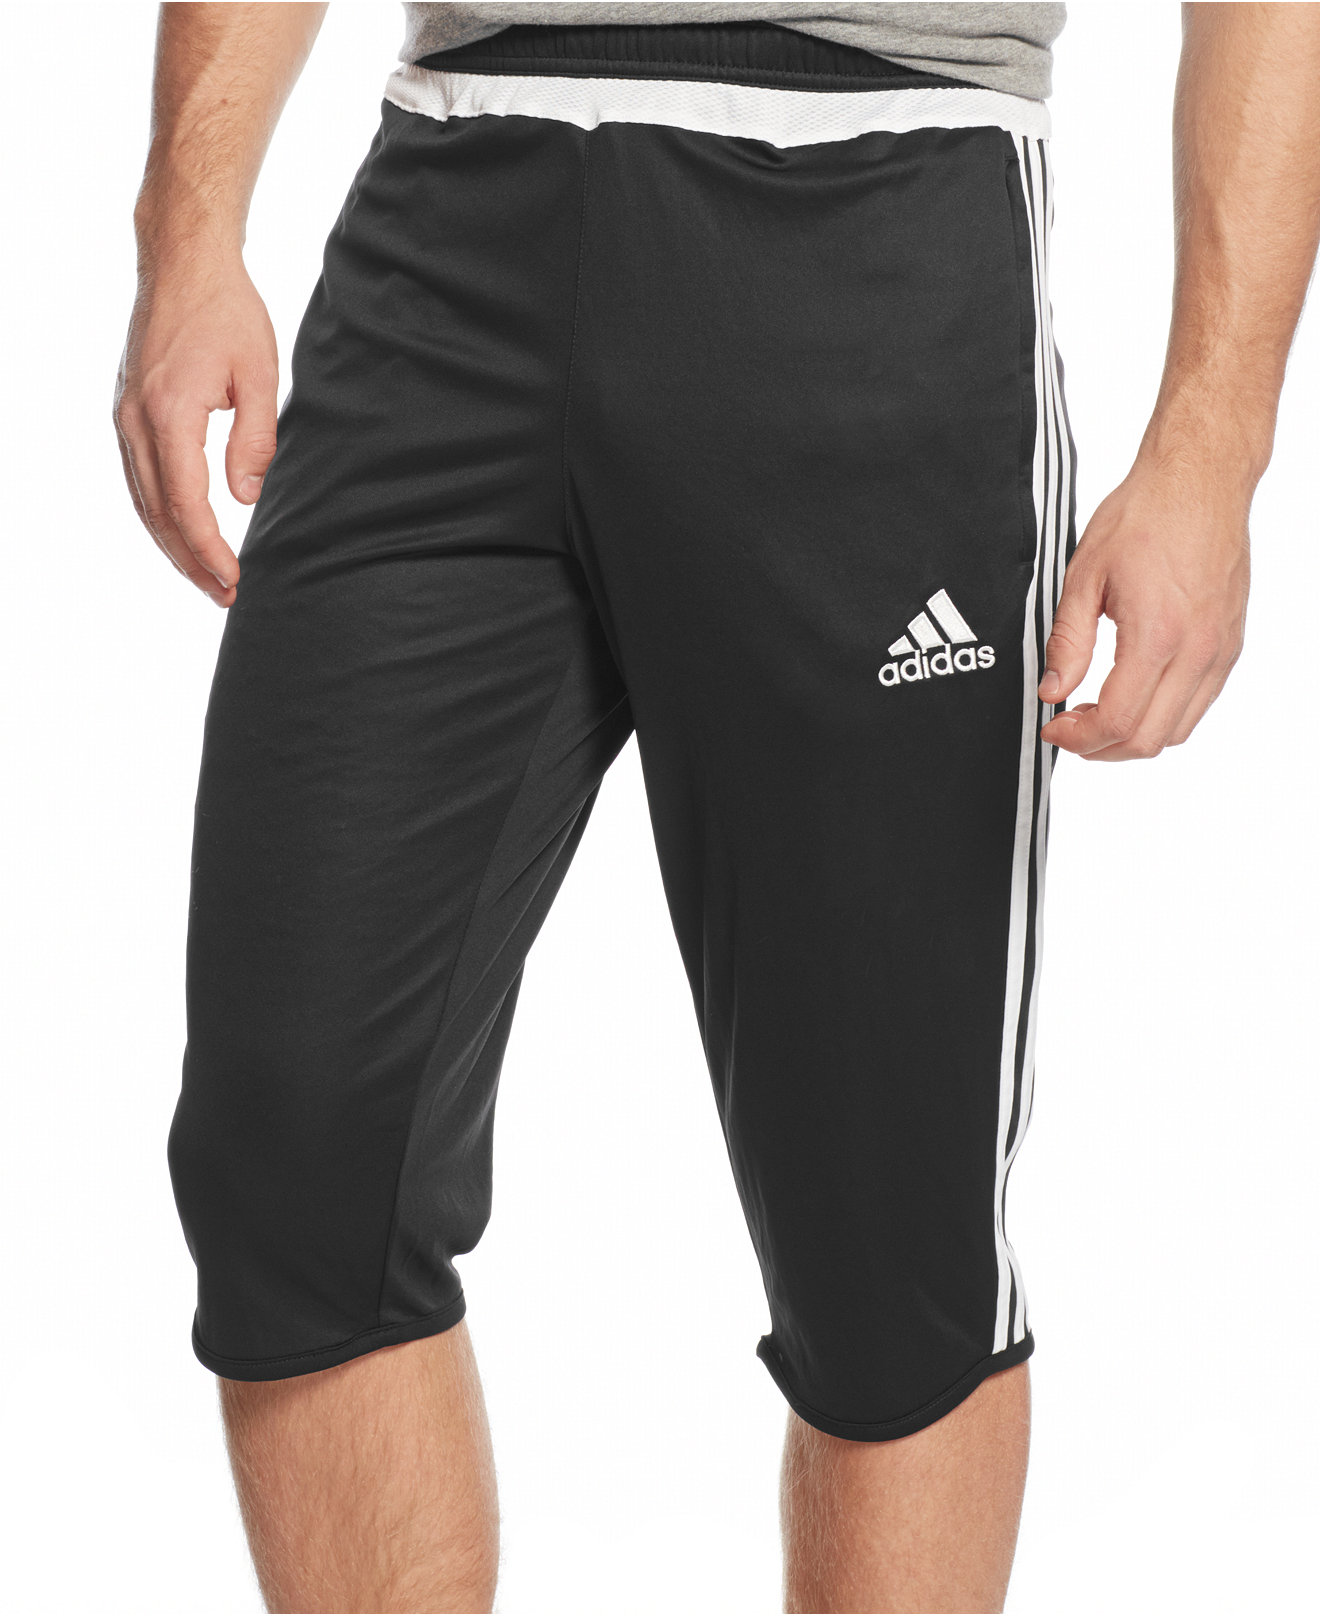 men adidas 3 4 pants. Black Bedroom Furniture Sets. Home Design Ideas